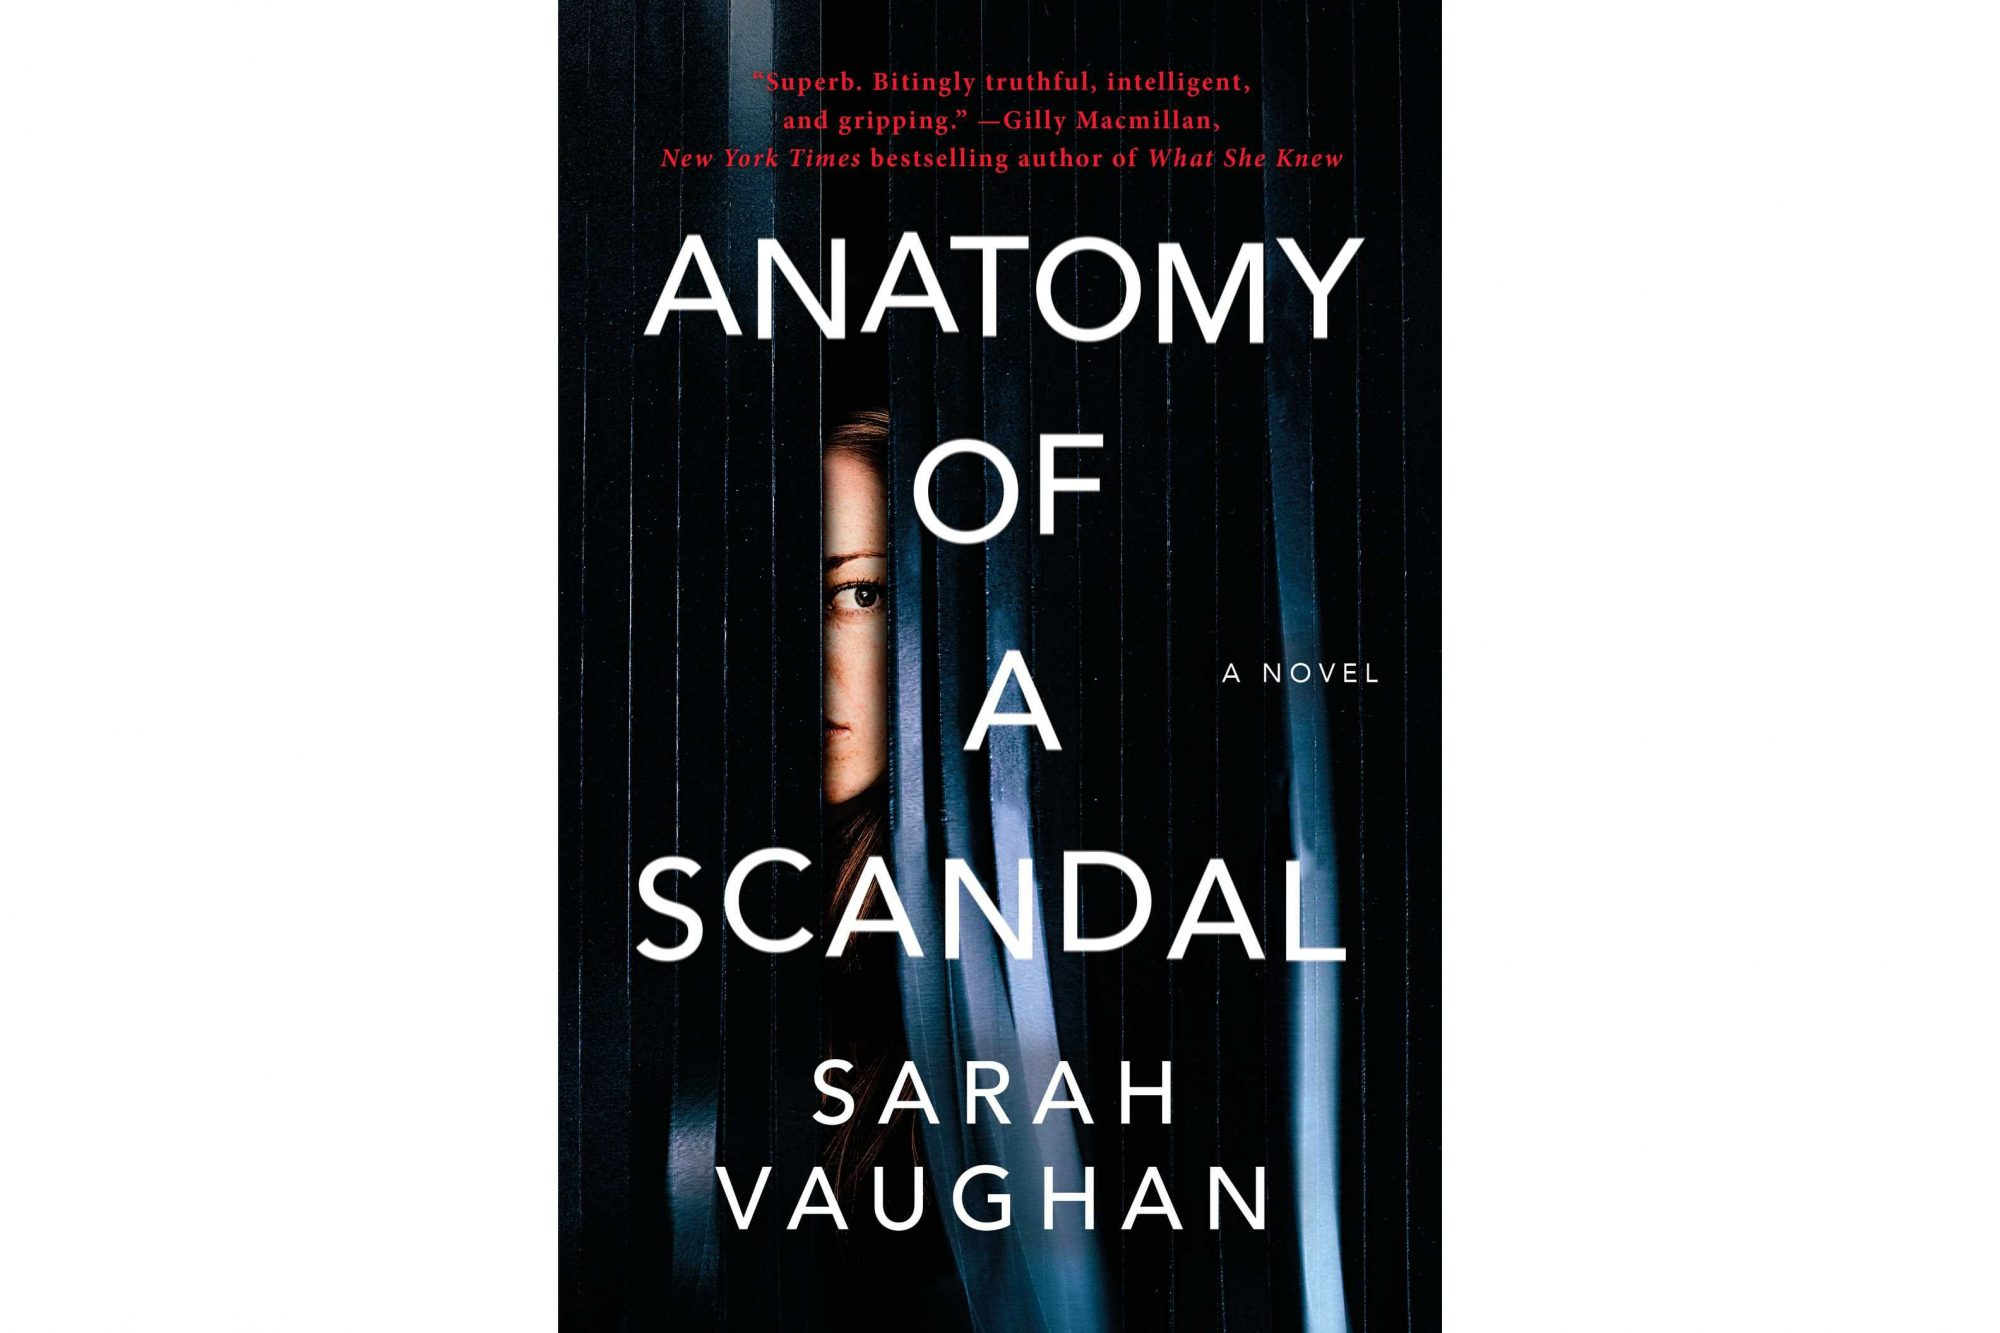 Anatomy of a Scandal, by Sarah Vaughan